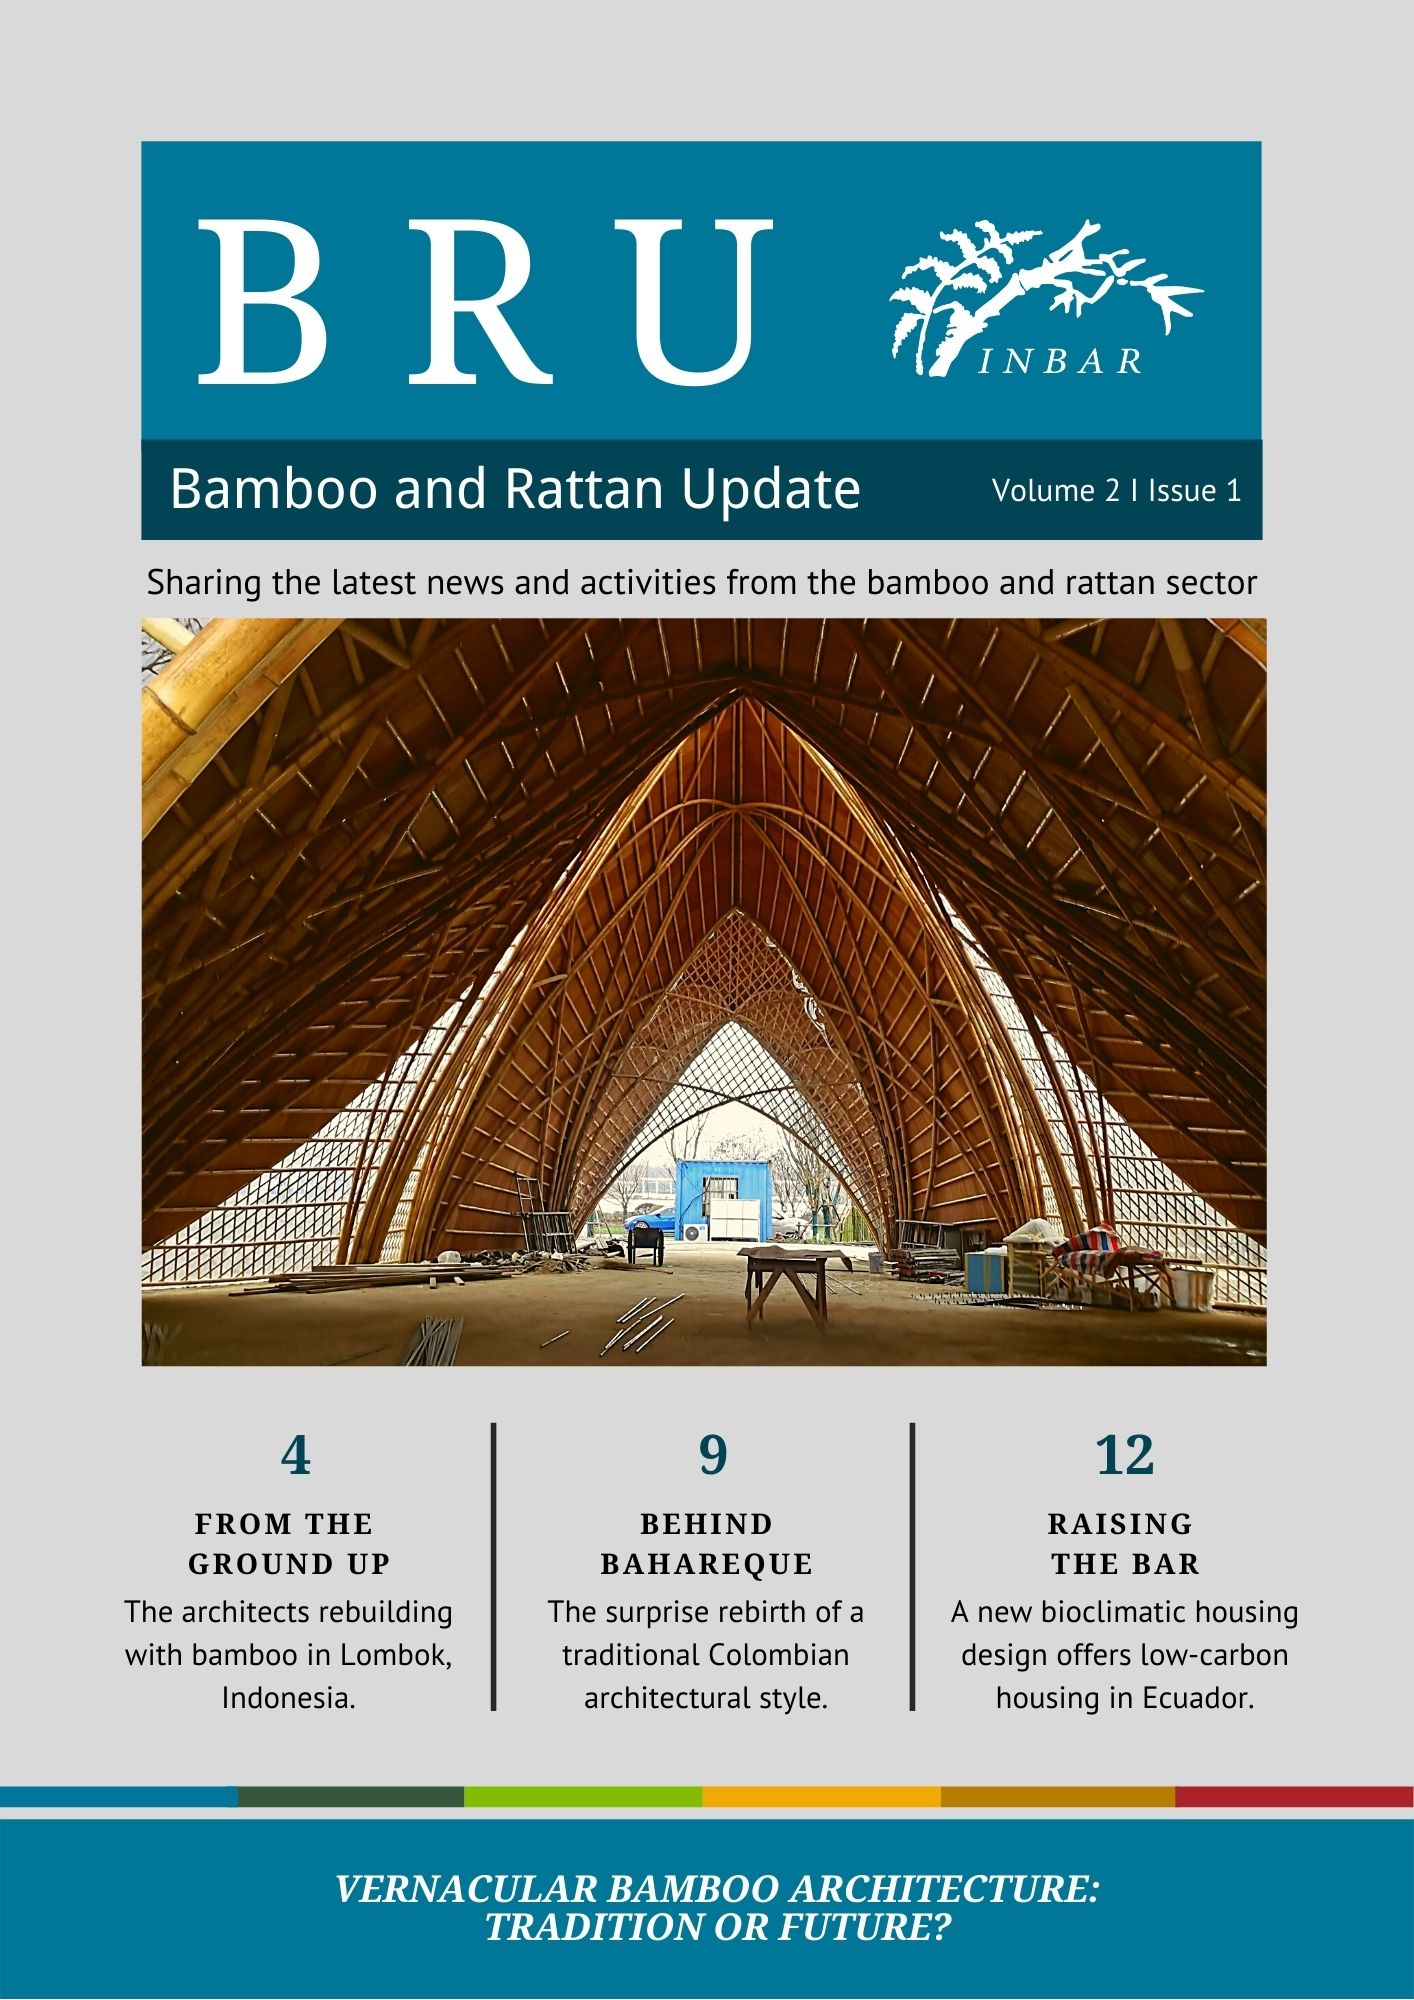 'Tradition or future': Bamboo and Rattan Update Volume 2 Issue 1